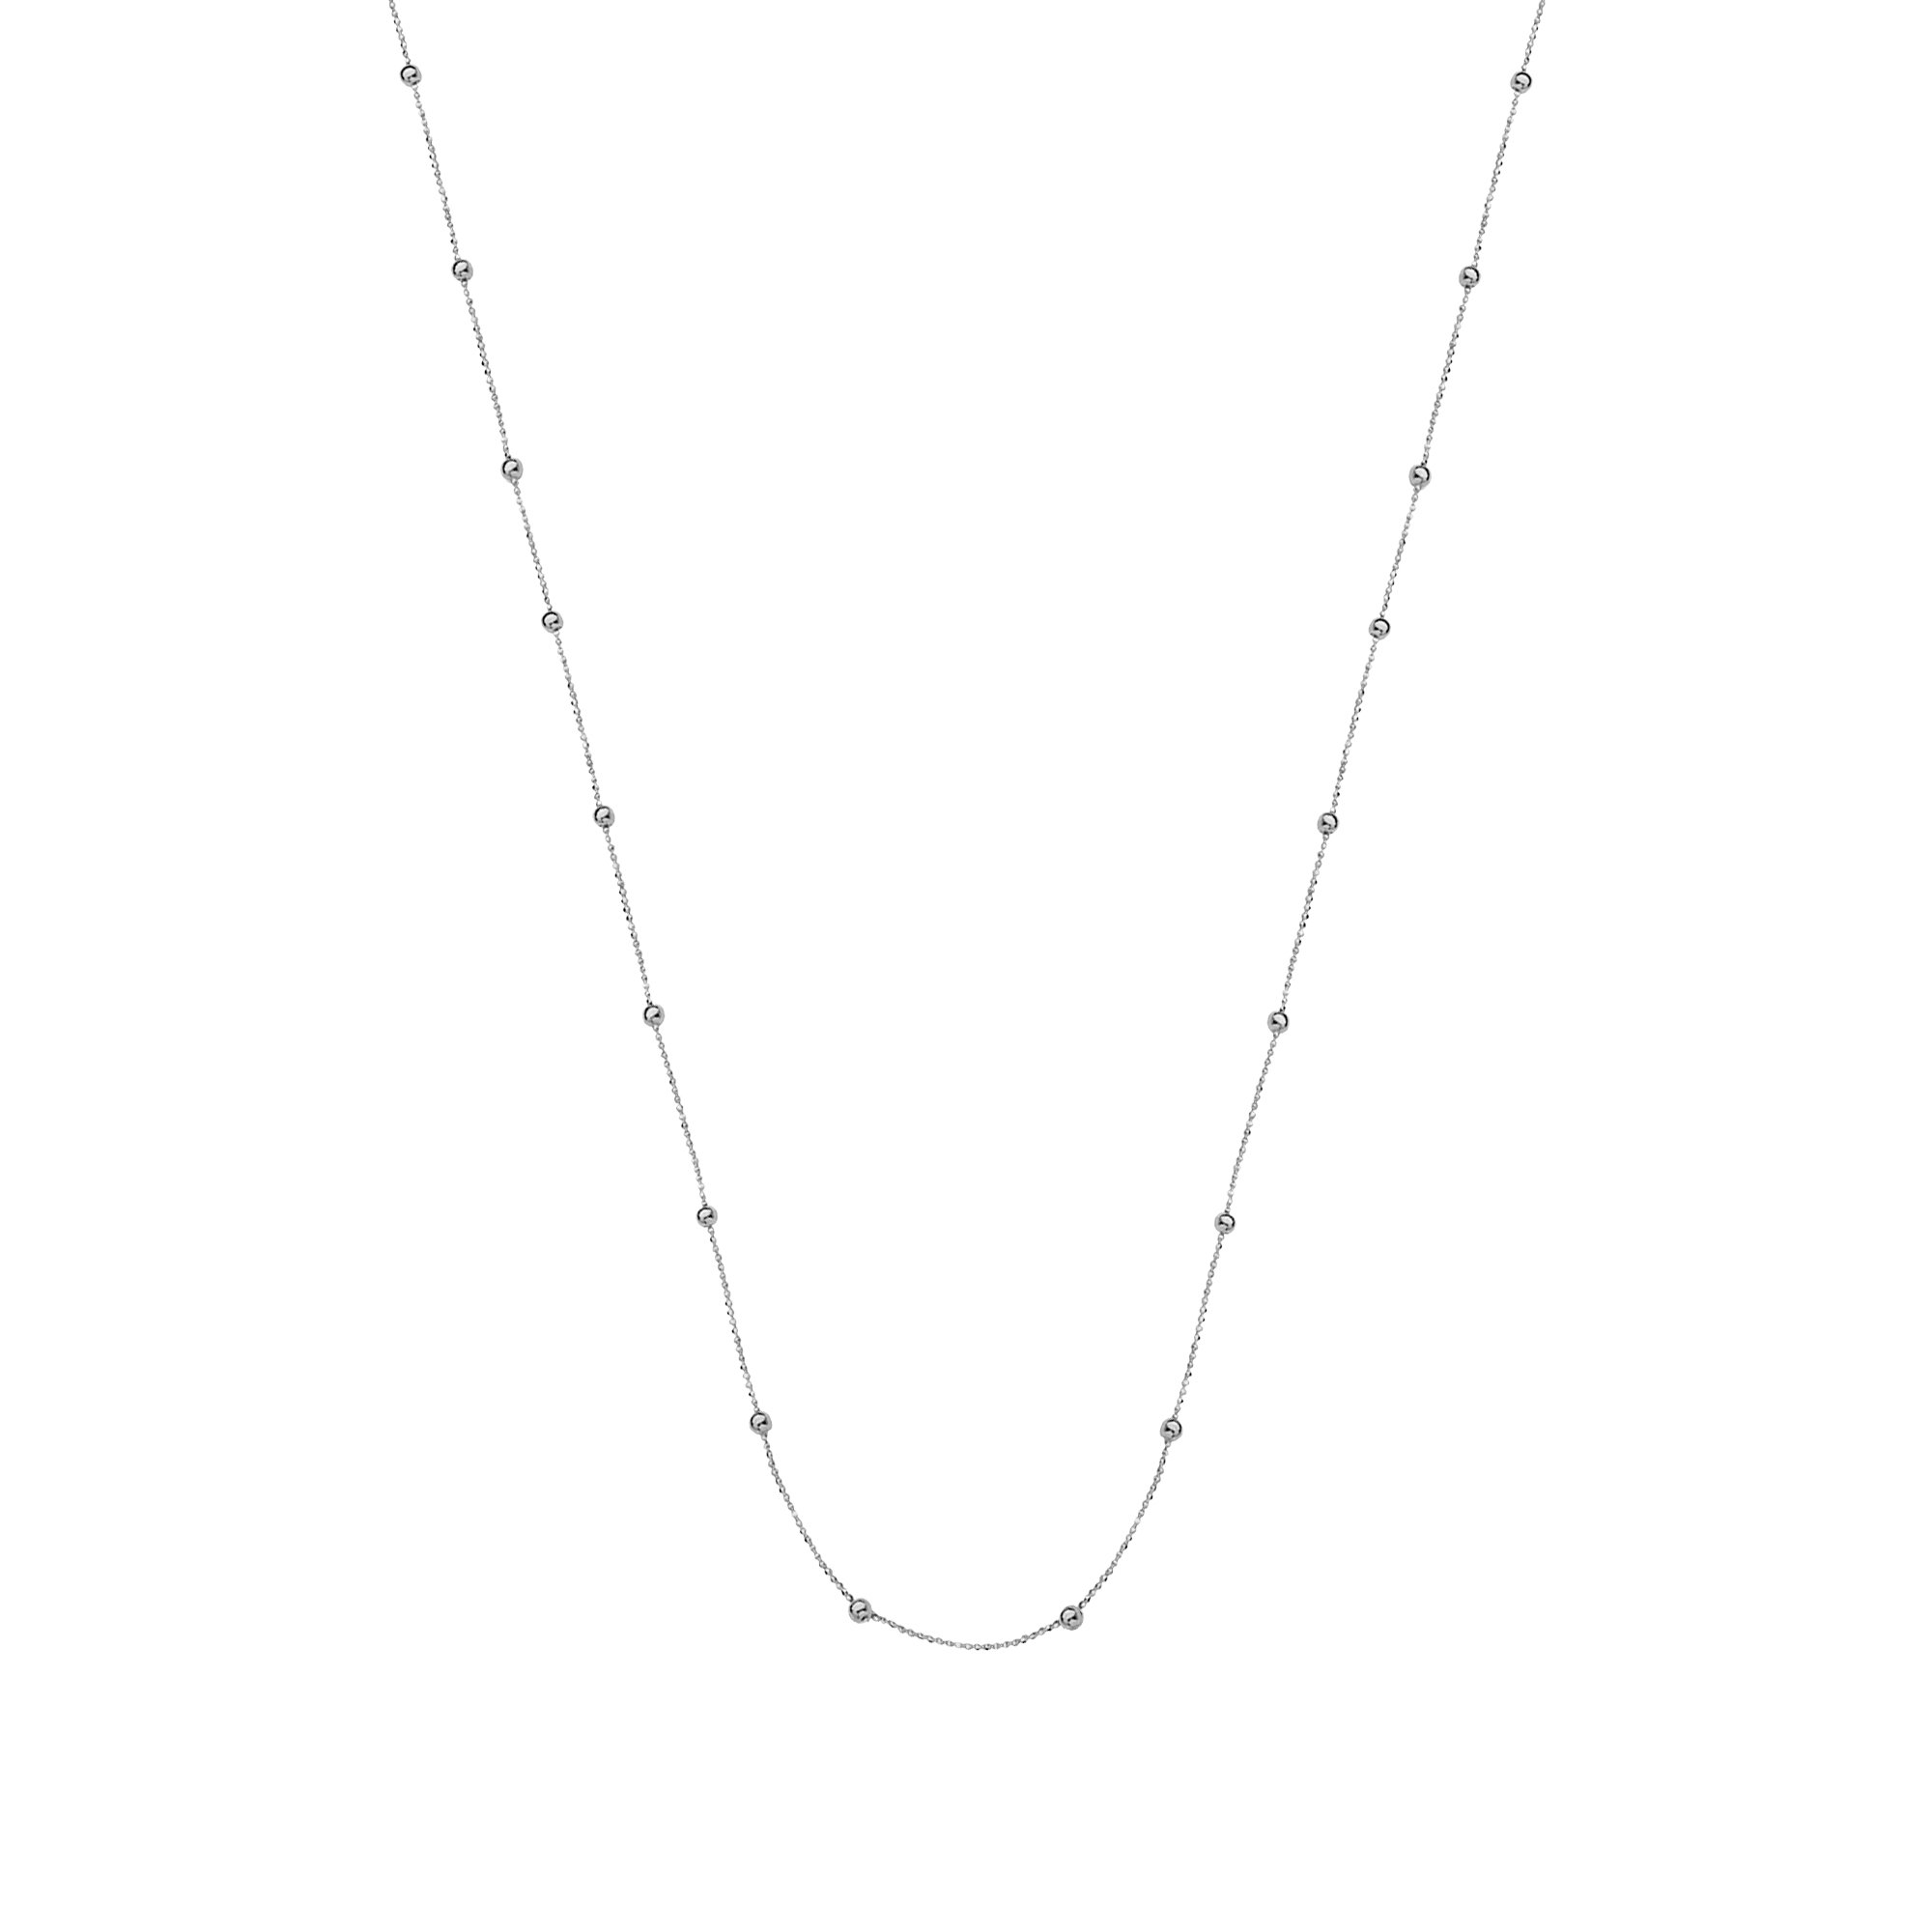 GOLD NECKLACE, 14KT GOLD MICRO BEAD WITH POL BEAD STATIONS NECKLACE